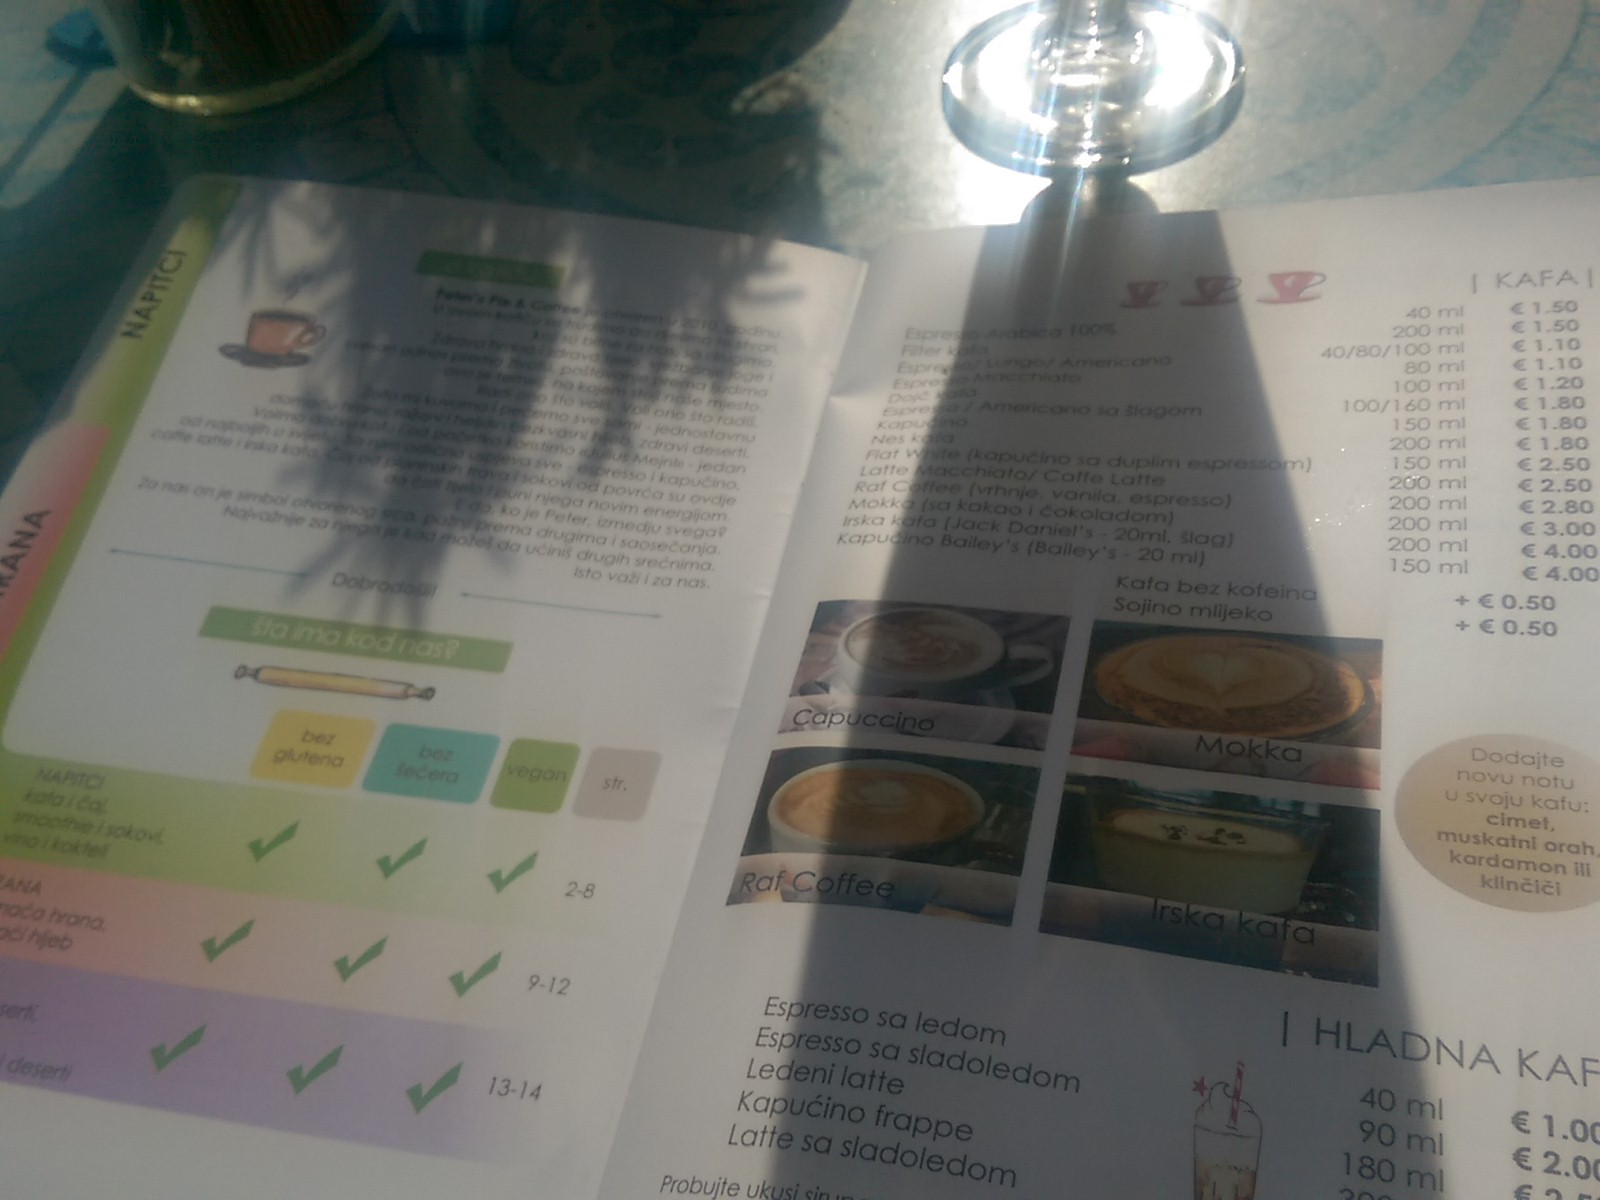 A menu open on the table with pictures of food and a key for dietary requirements, shadows from a glass and plant